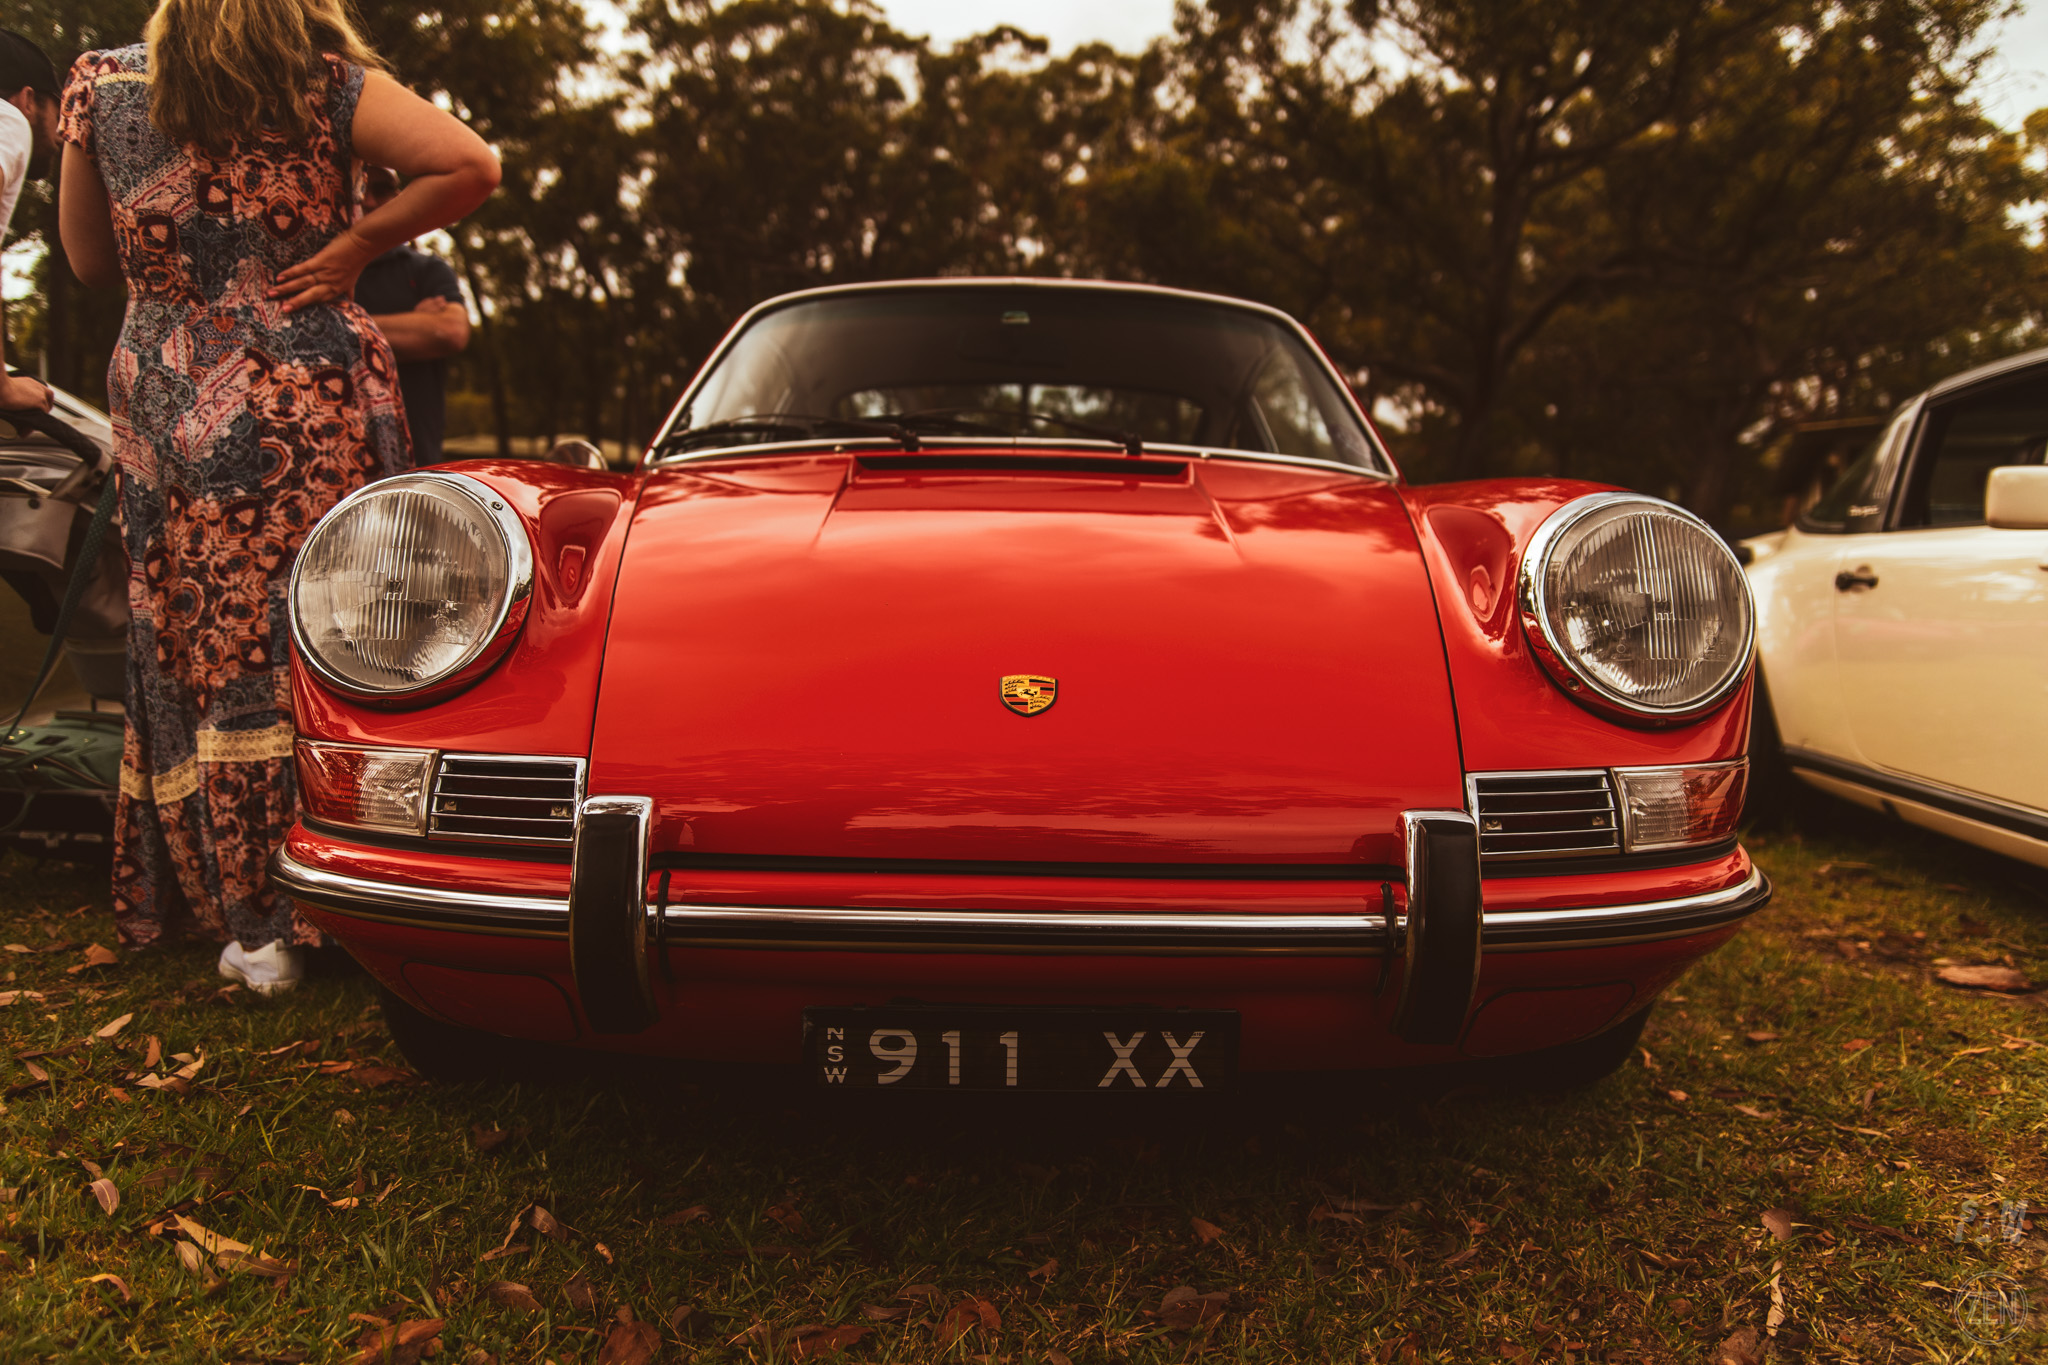 2019-12-08 - Porsches & Coffee 041